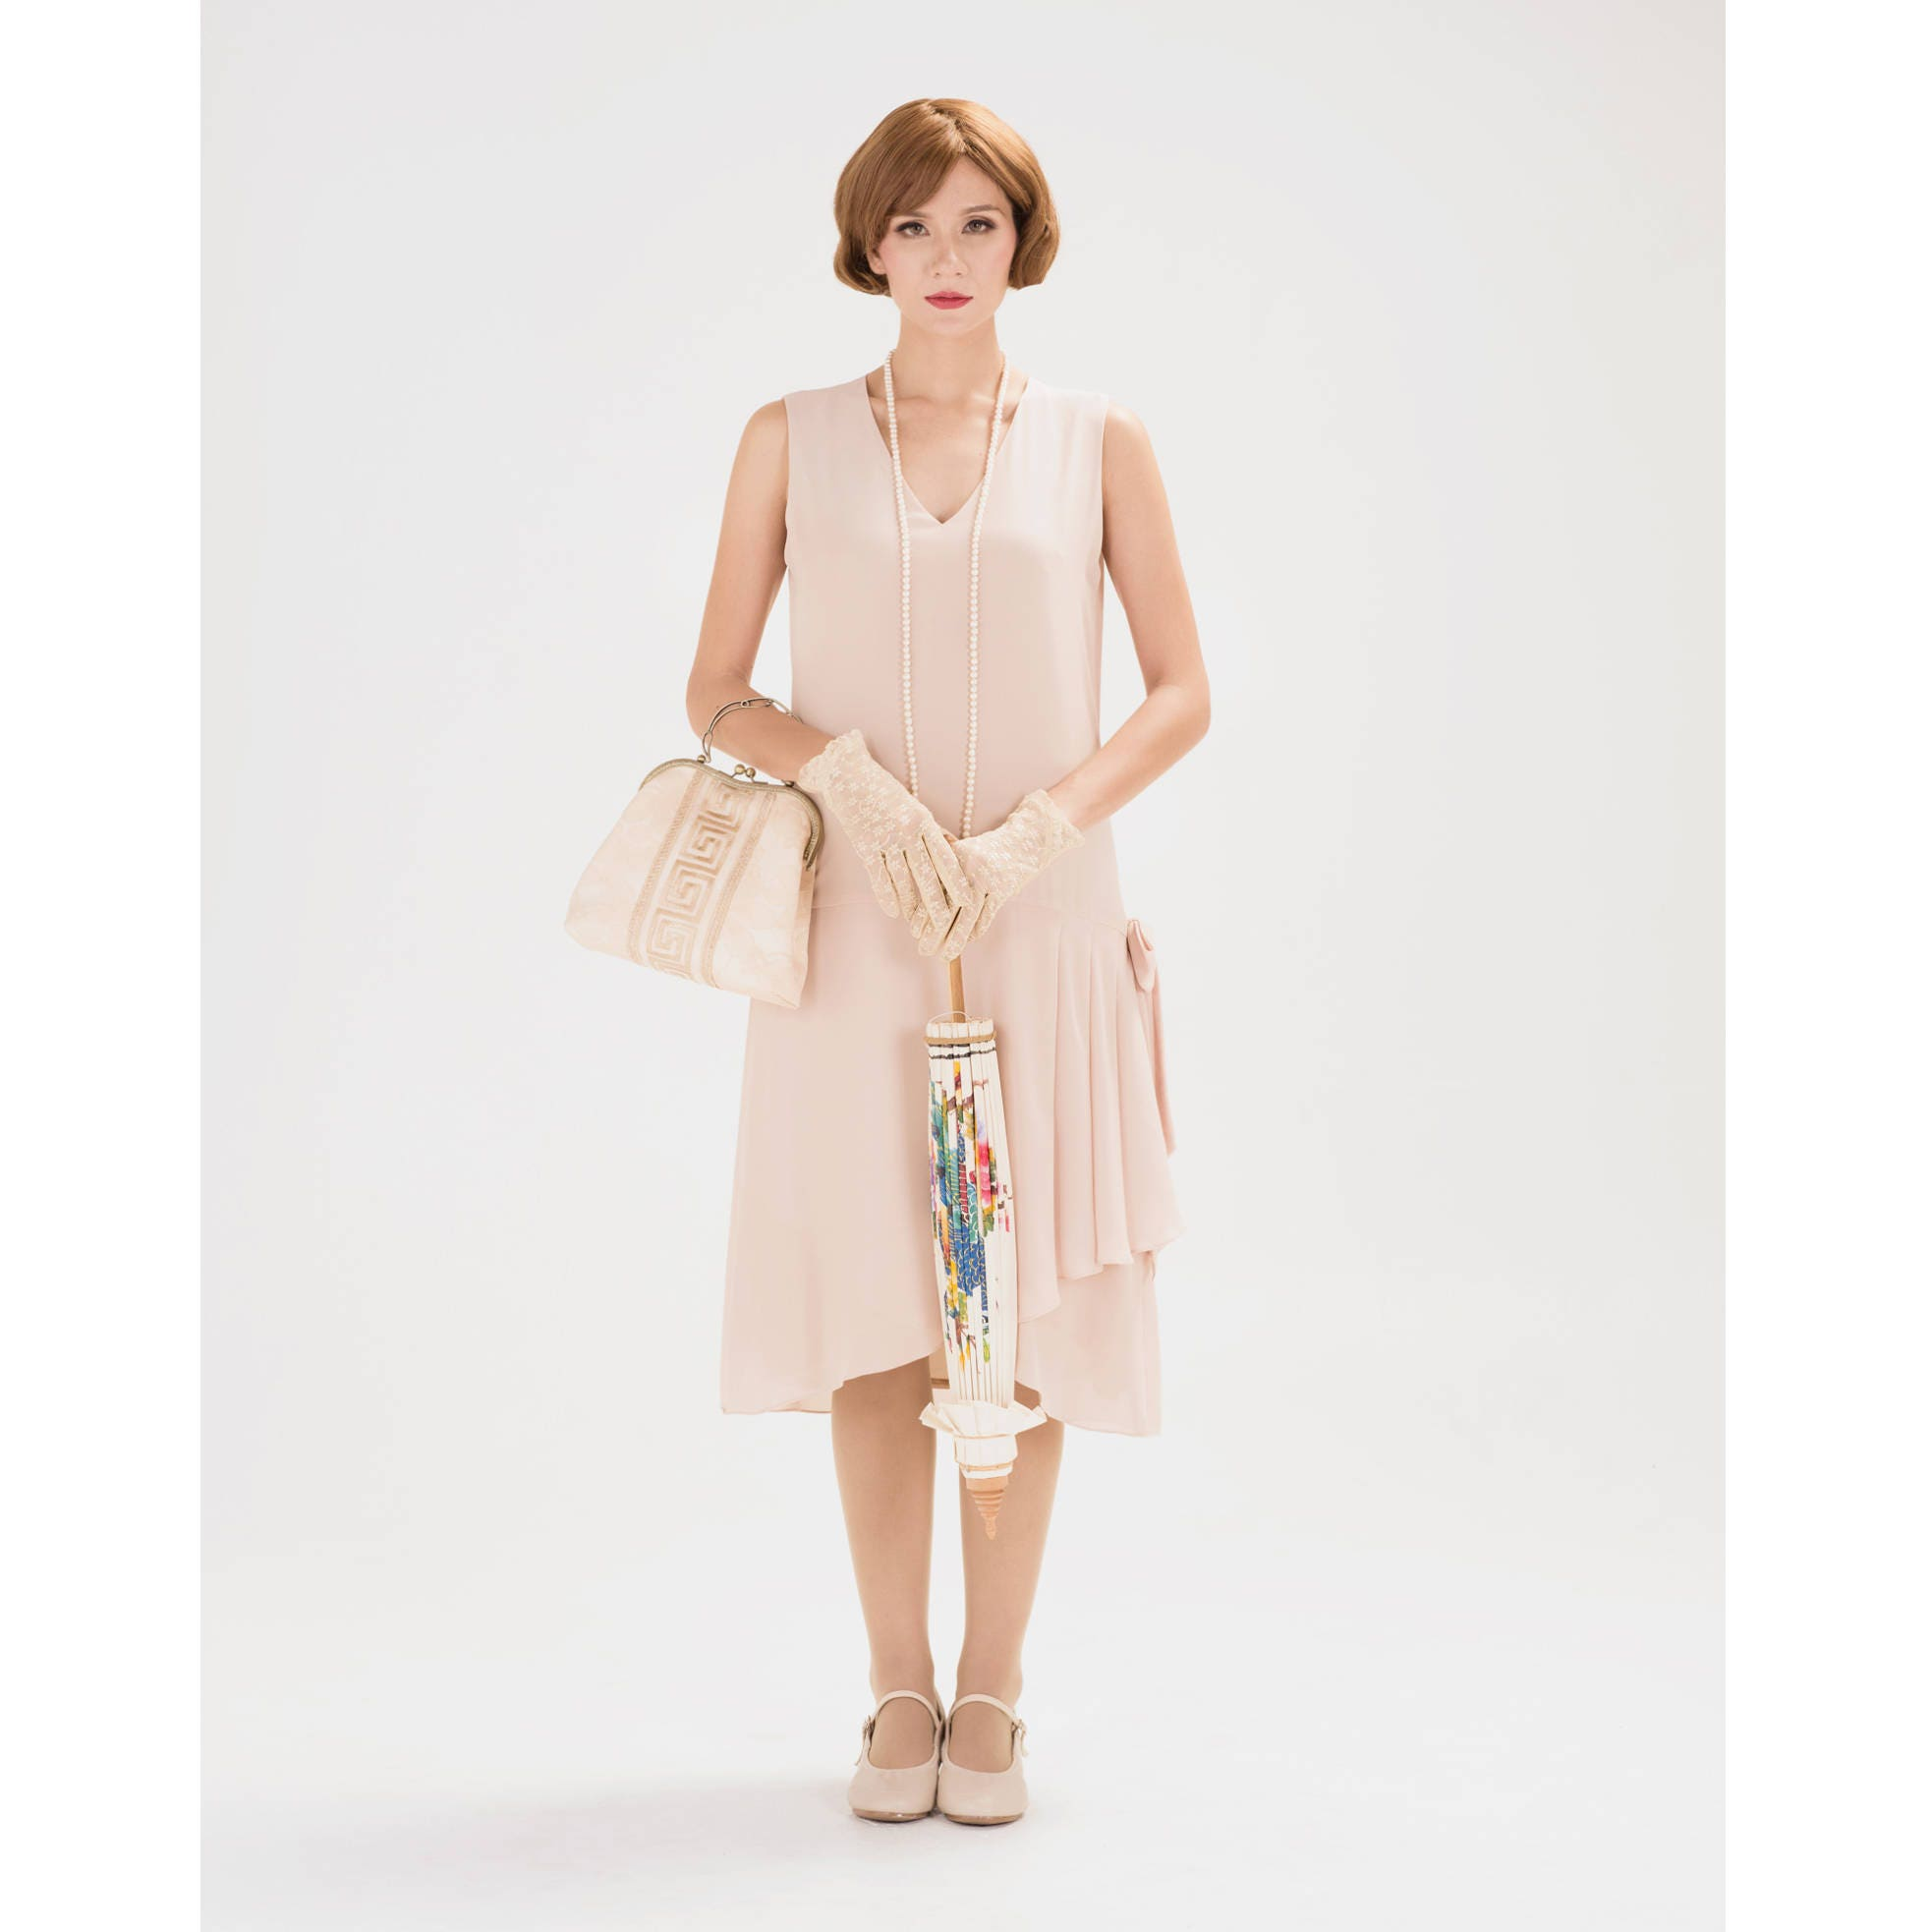 1920s flapper dress with drape and bow in nude color Great